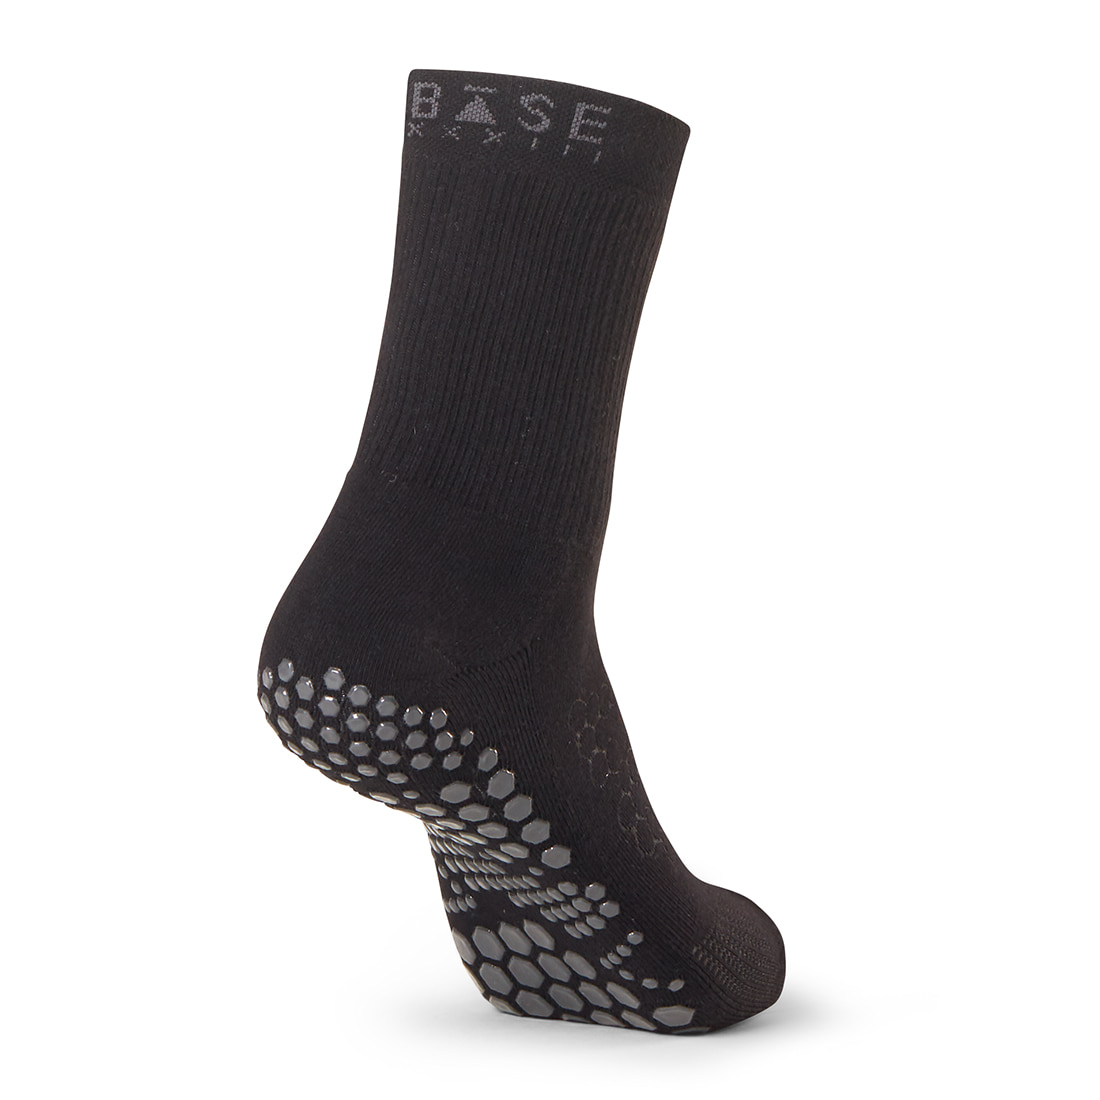 BASE33 Grip Crew Black